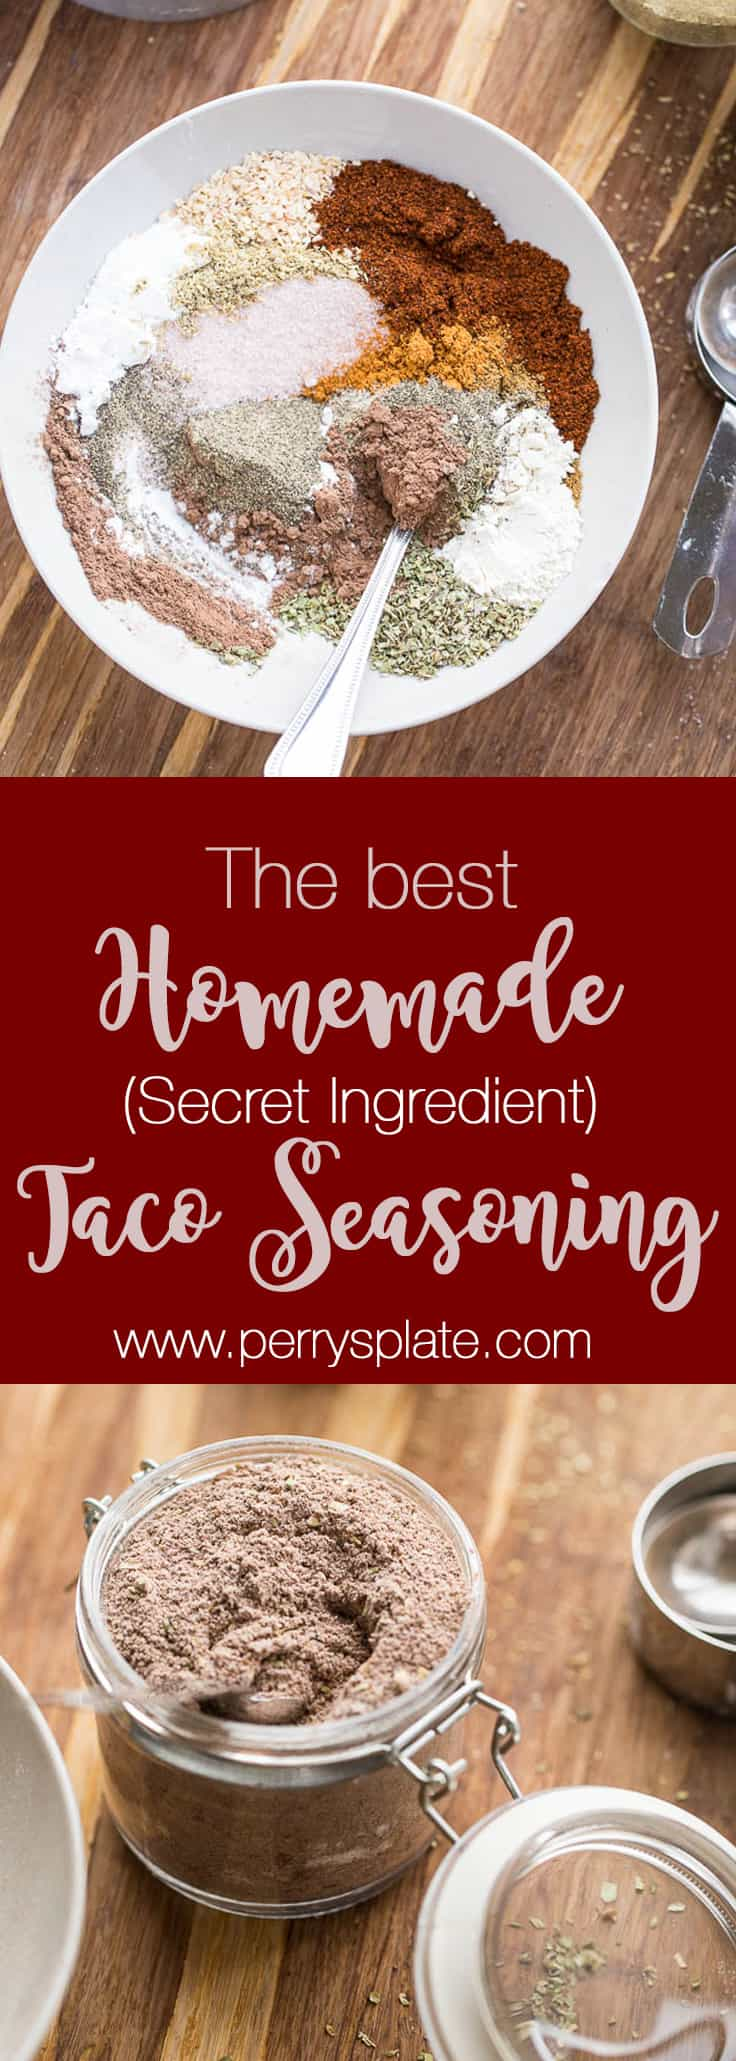 The BEST homemade taco seasoning recipe out there. Honest. And you can tweak it to make it paleo, Whole30 compliant, or keto/low-carb friendly! perrysplate.com #tacoseasoning #homemadetacoseasoning #glutenfree